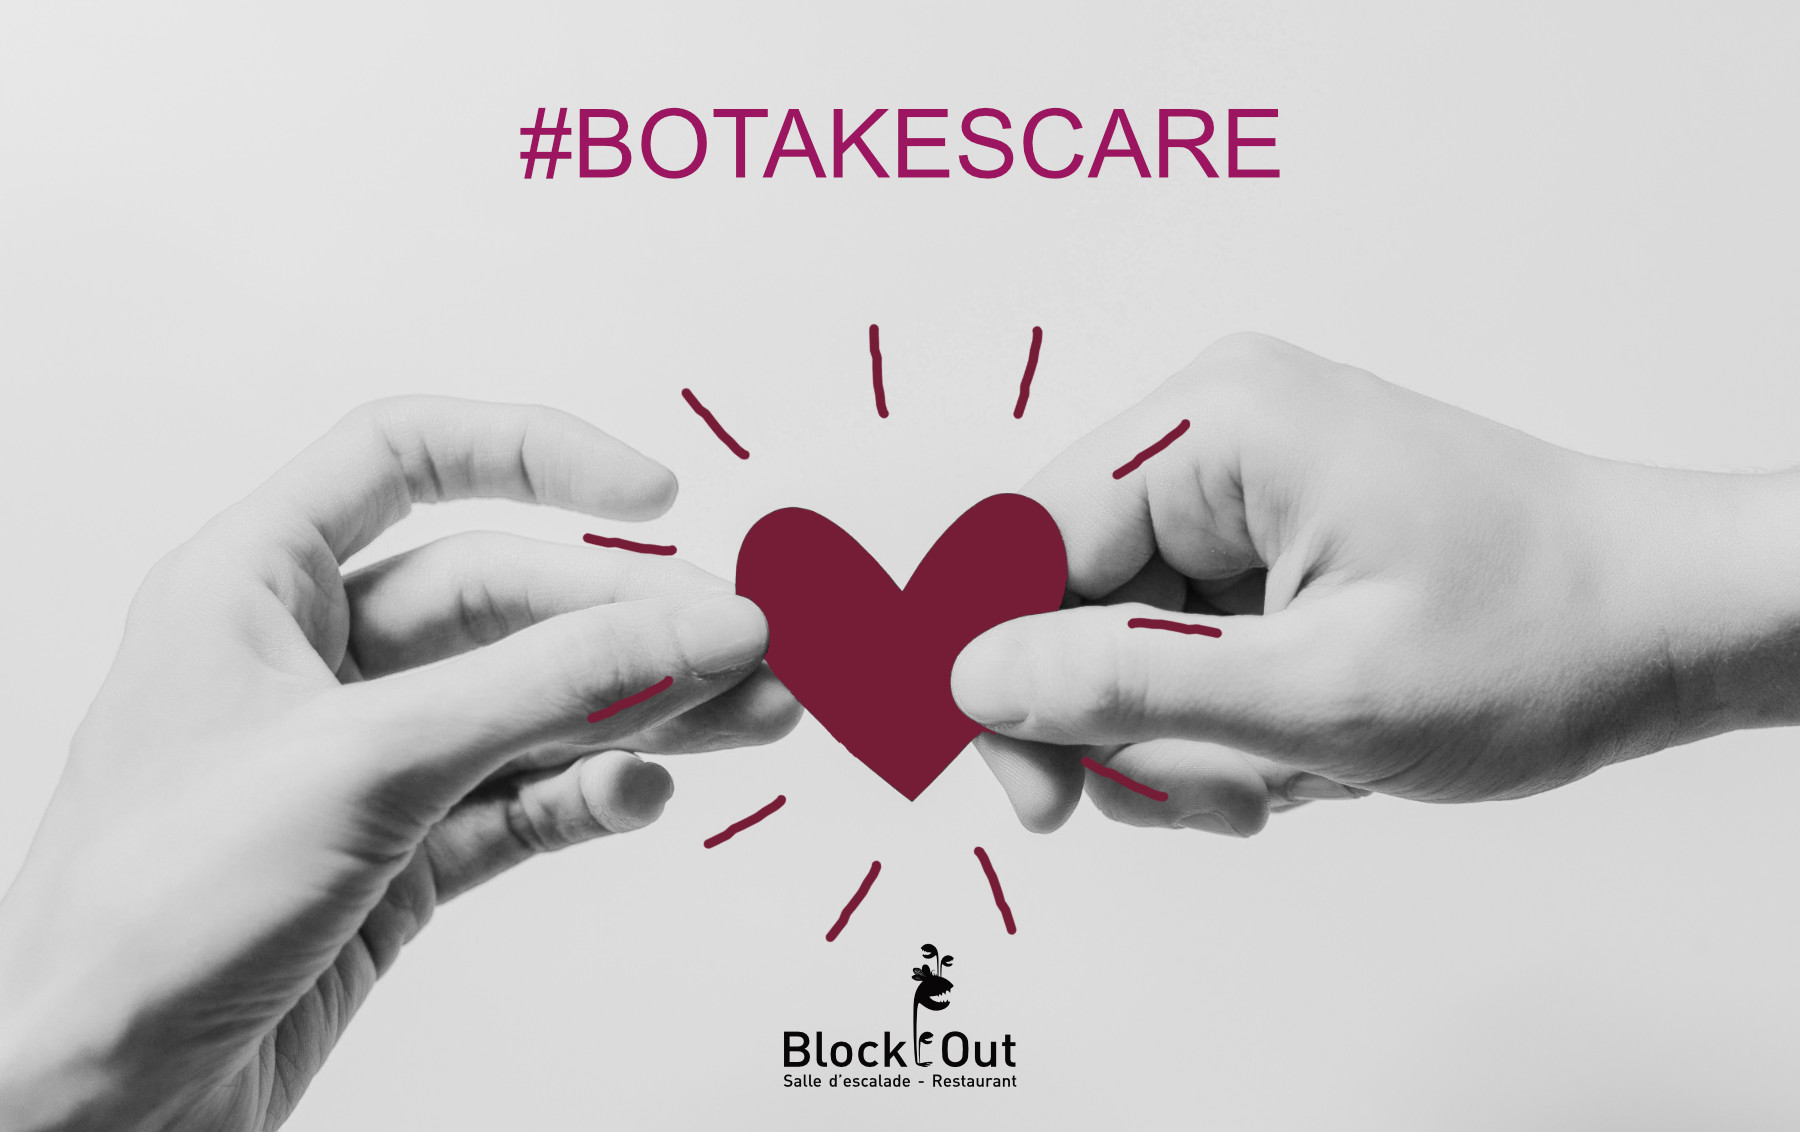 Lancement d'une campagne nationale #BOTAKESCARE